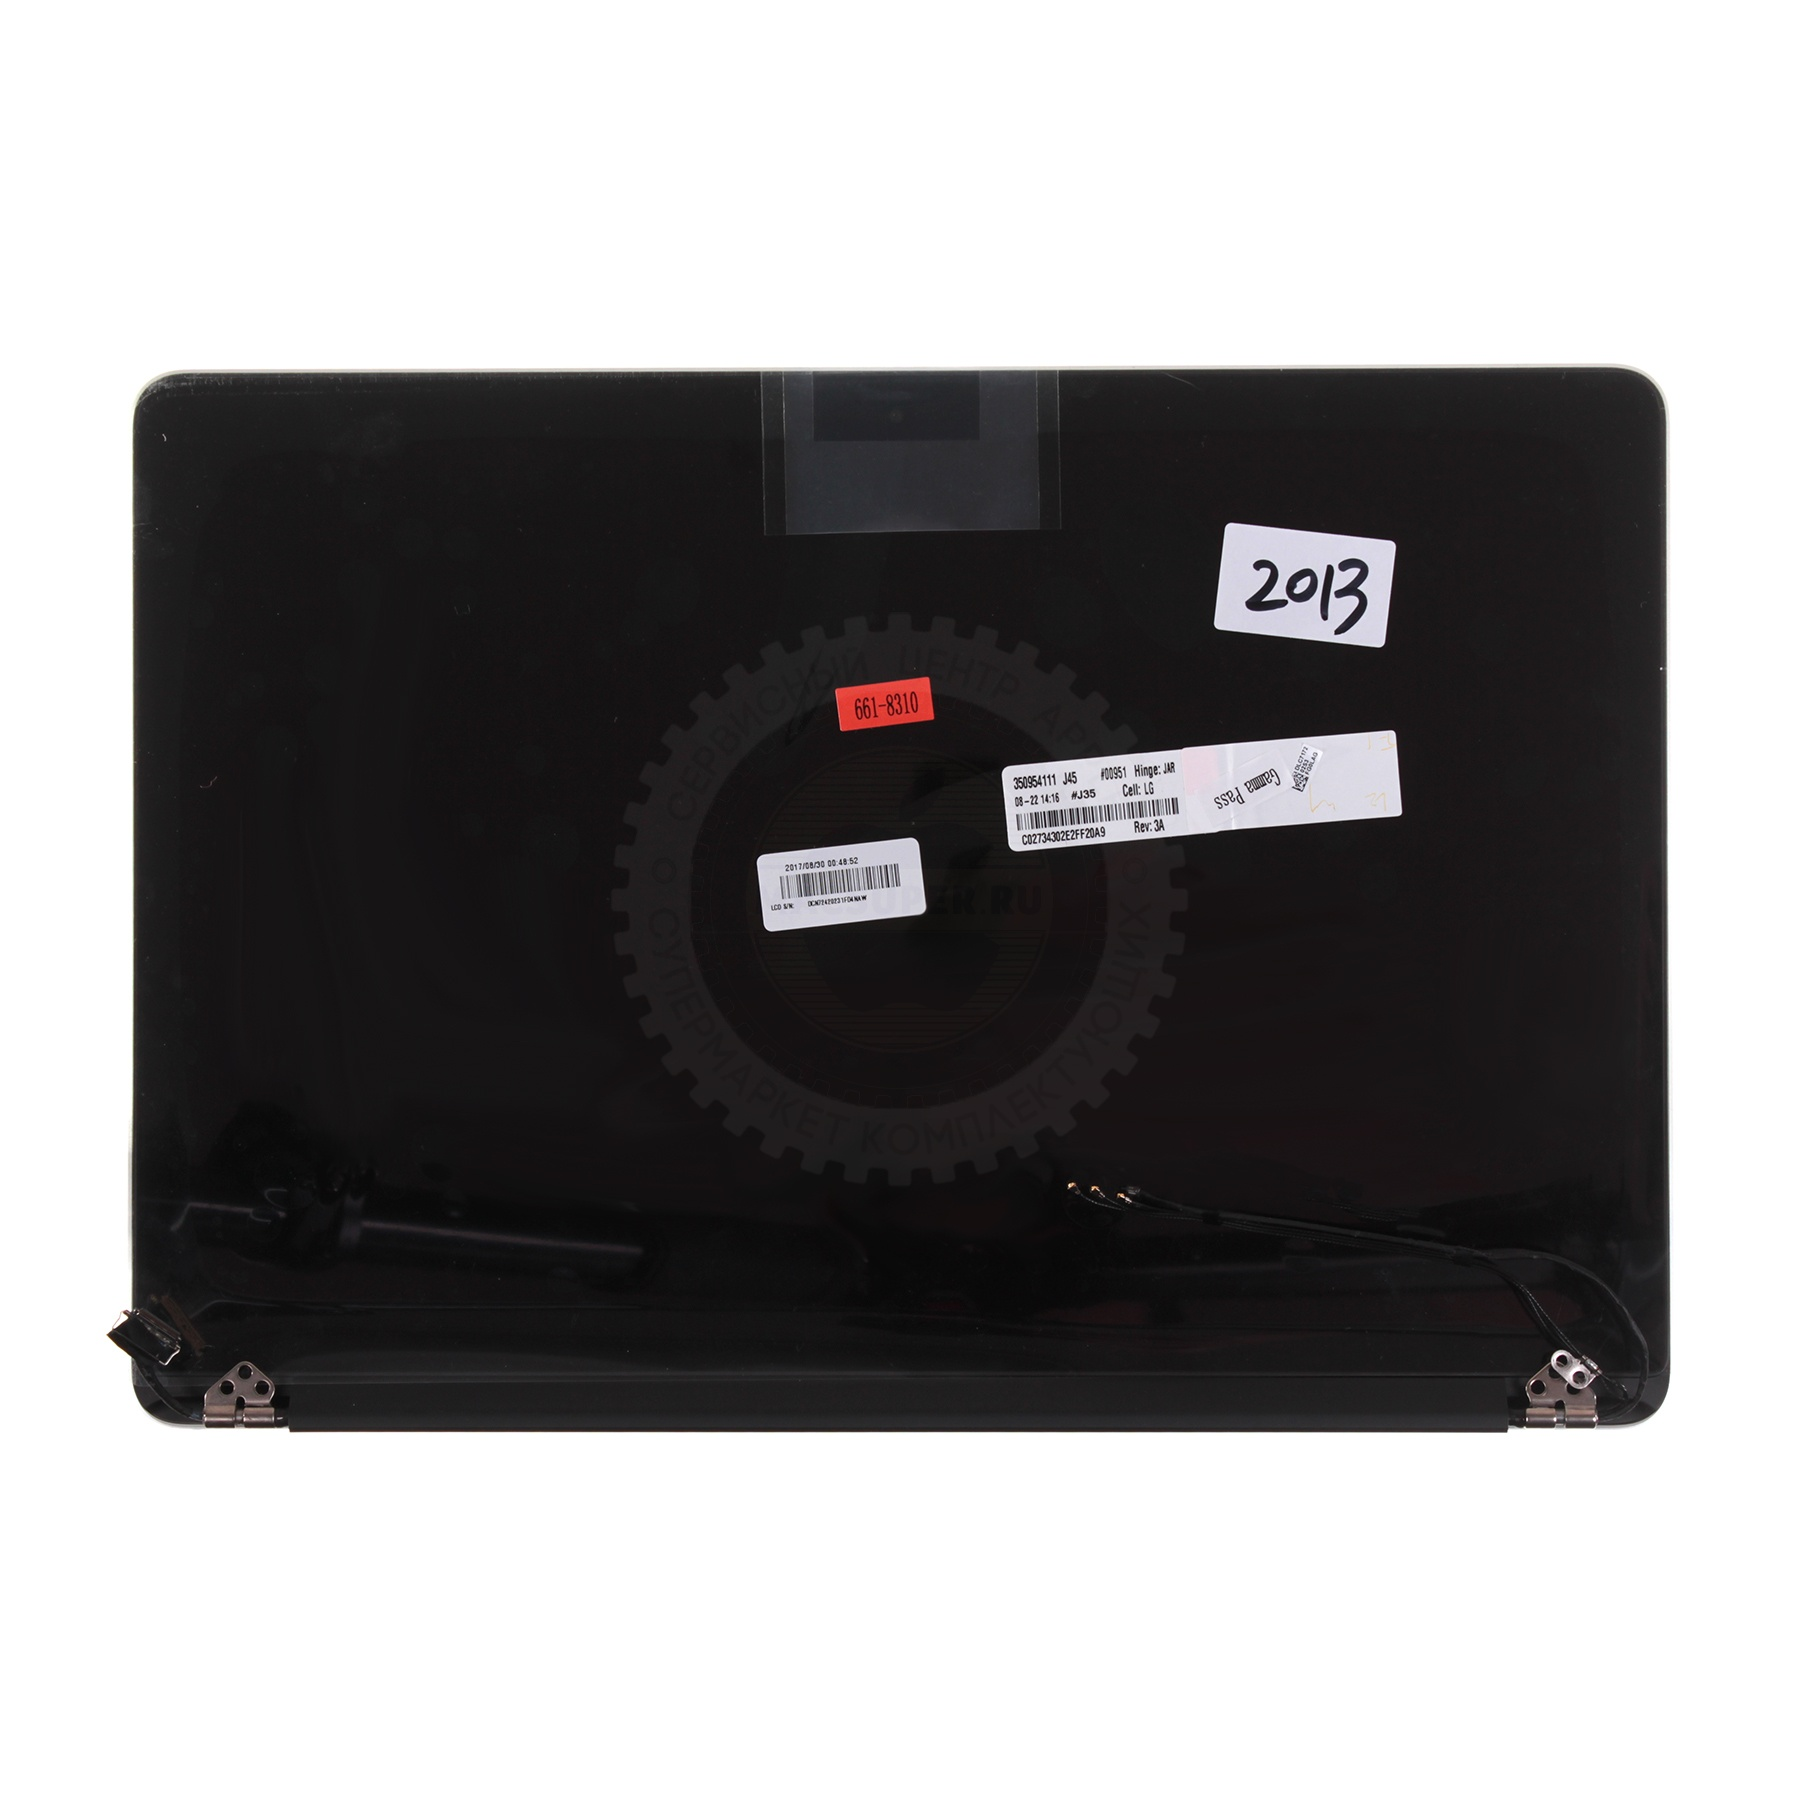 "Купить дисплей в сборе для macbook pro 13"" retina a1502 (end 2013 - mid 2014) with factory stickers"